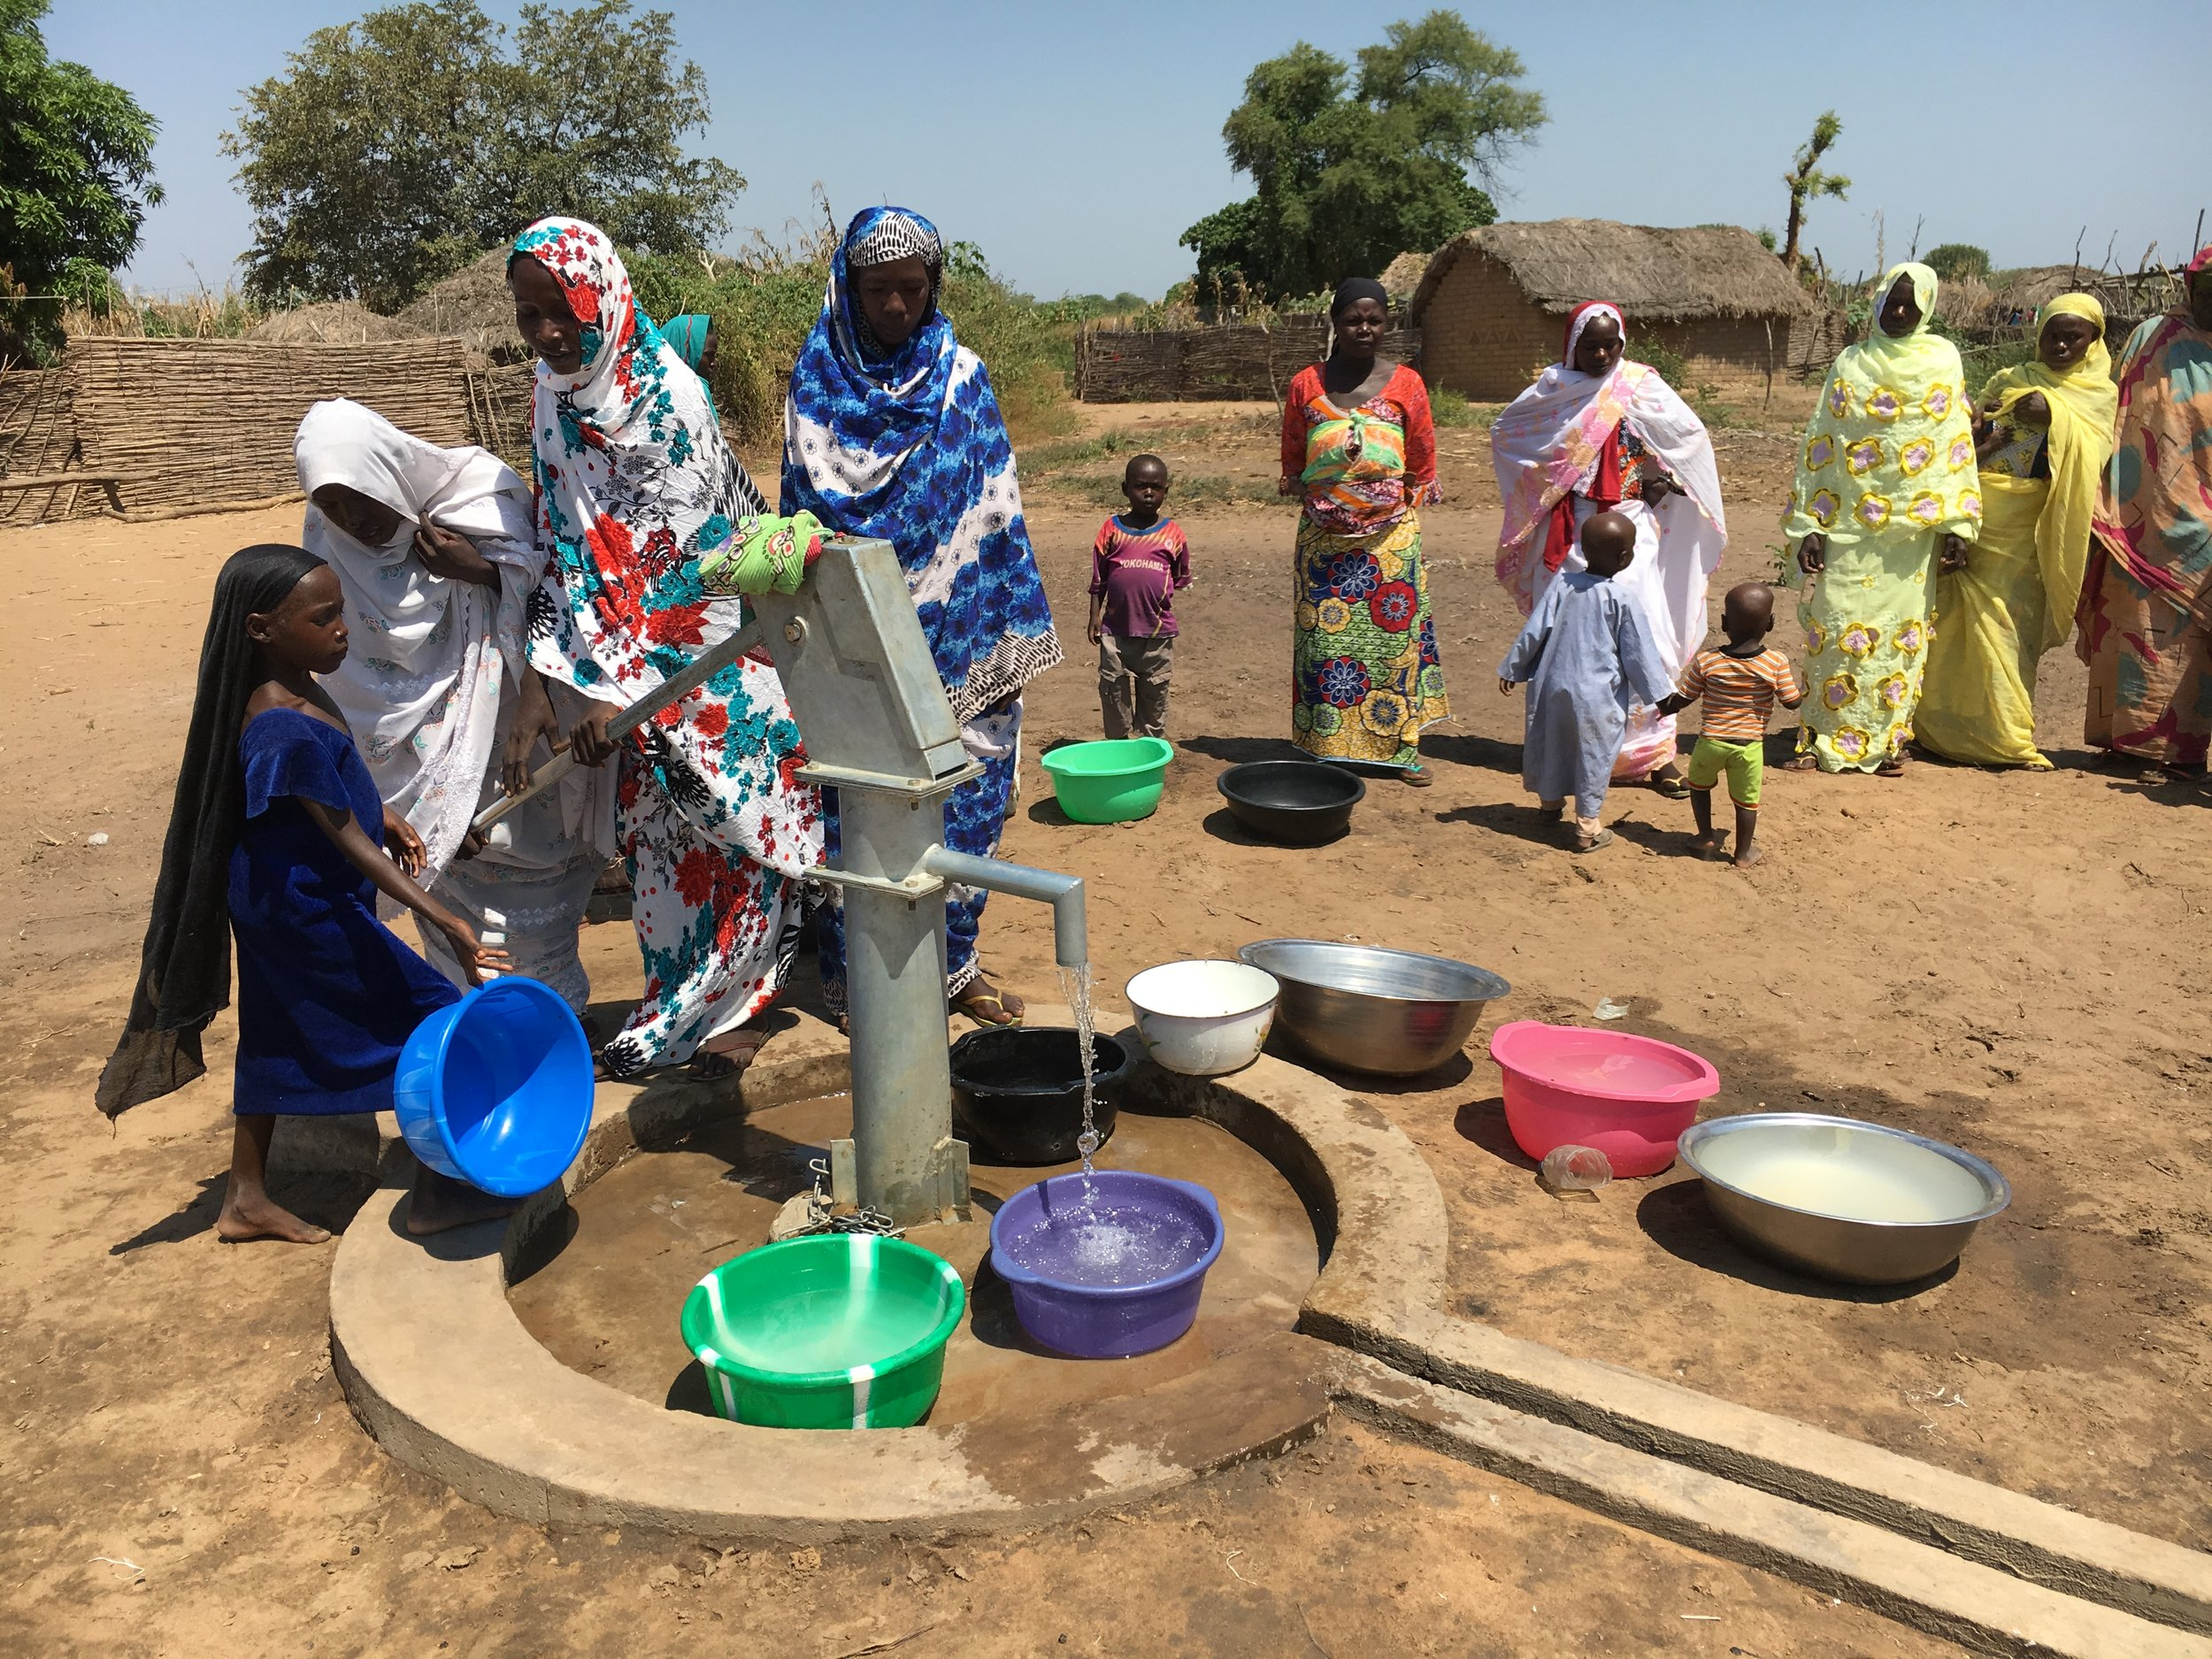 Chad-Africa-clean-water-well-10.JPG